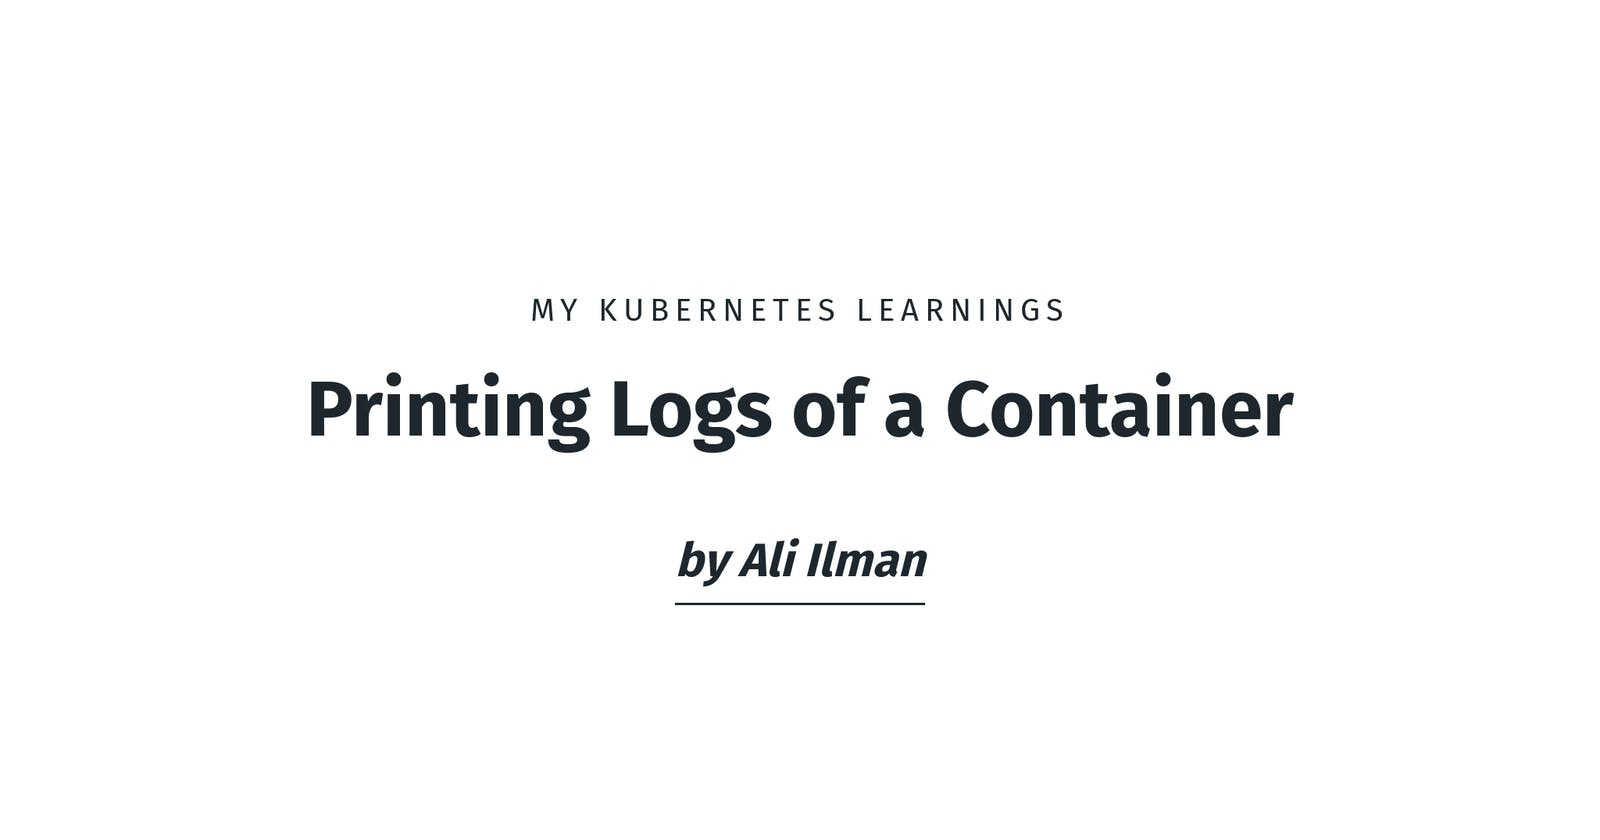 Printing Logs of a Container